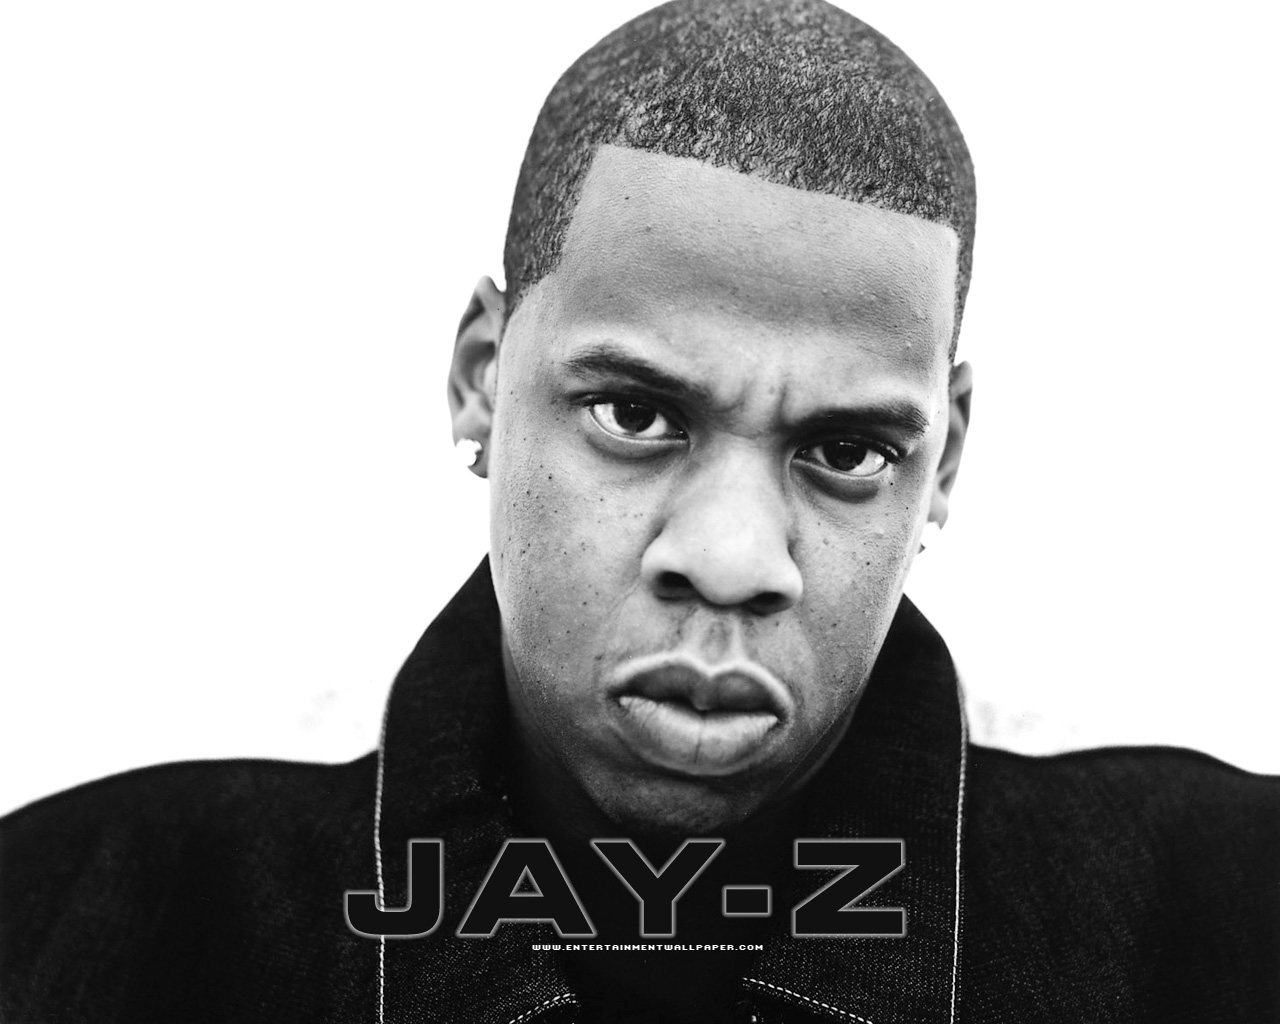 Jay z interview talks 9 11 nyc response jets wtt tour lisa jay z interview talks 9 11 nyc response jets wtt tour malvernweather Gallery